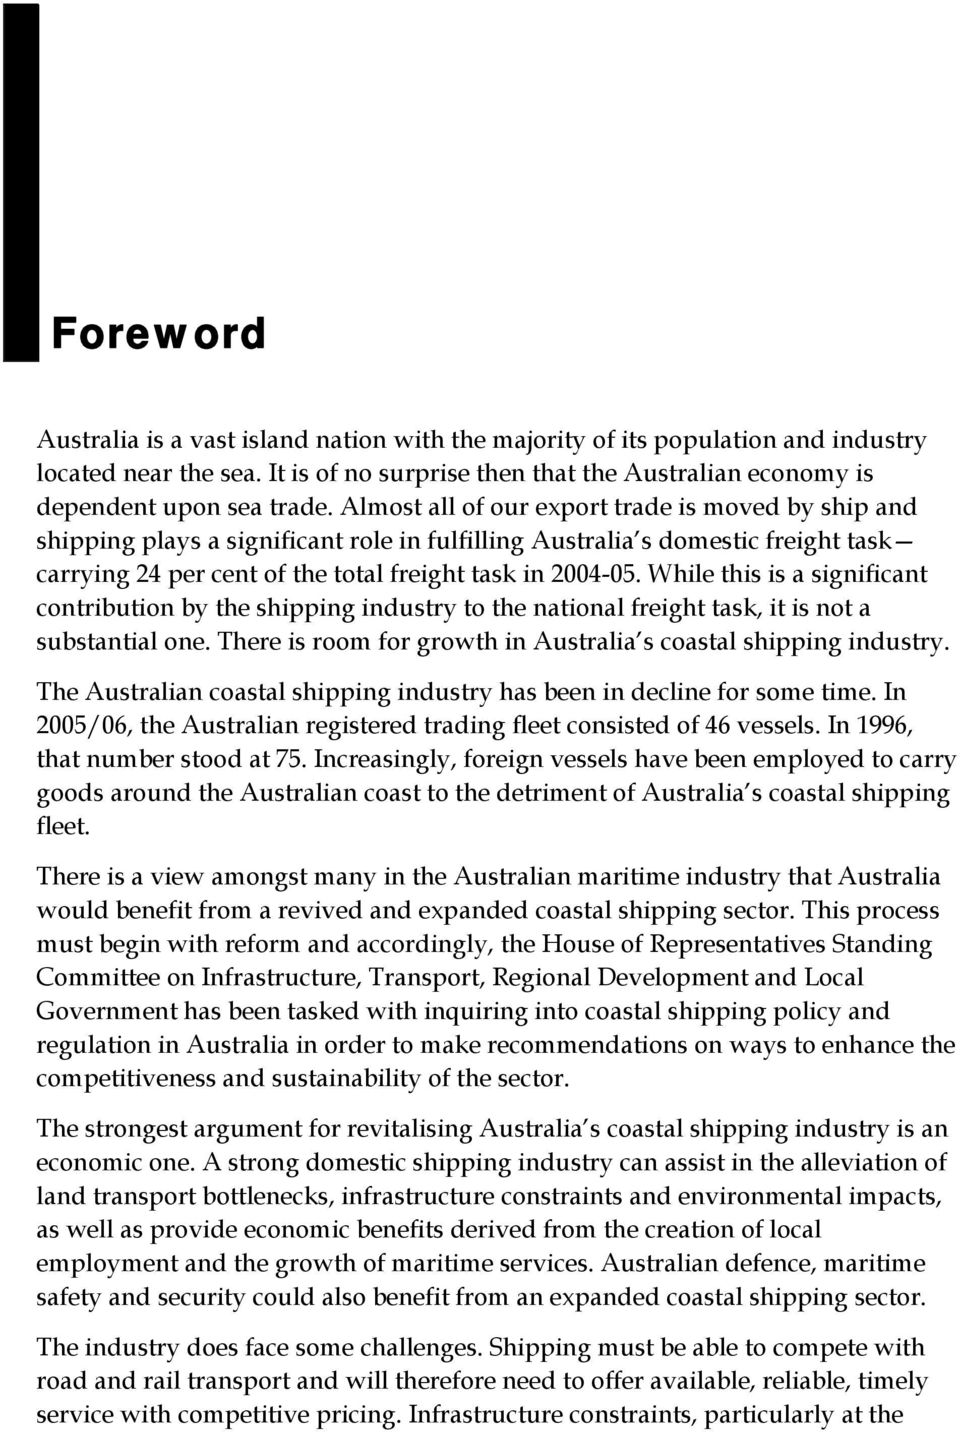 While this is a significant contribution by the shipping industry to the national freight task, it is not a substantial one. There is room for growth in Australia s coastal shipping industry.